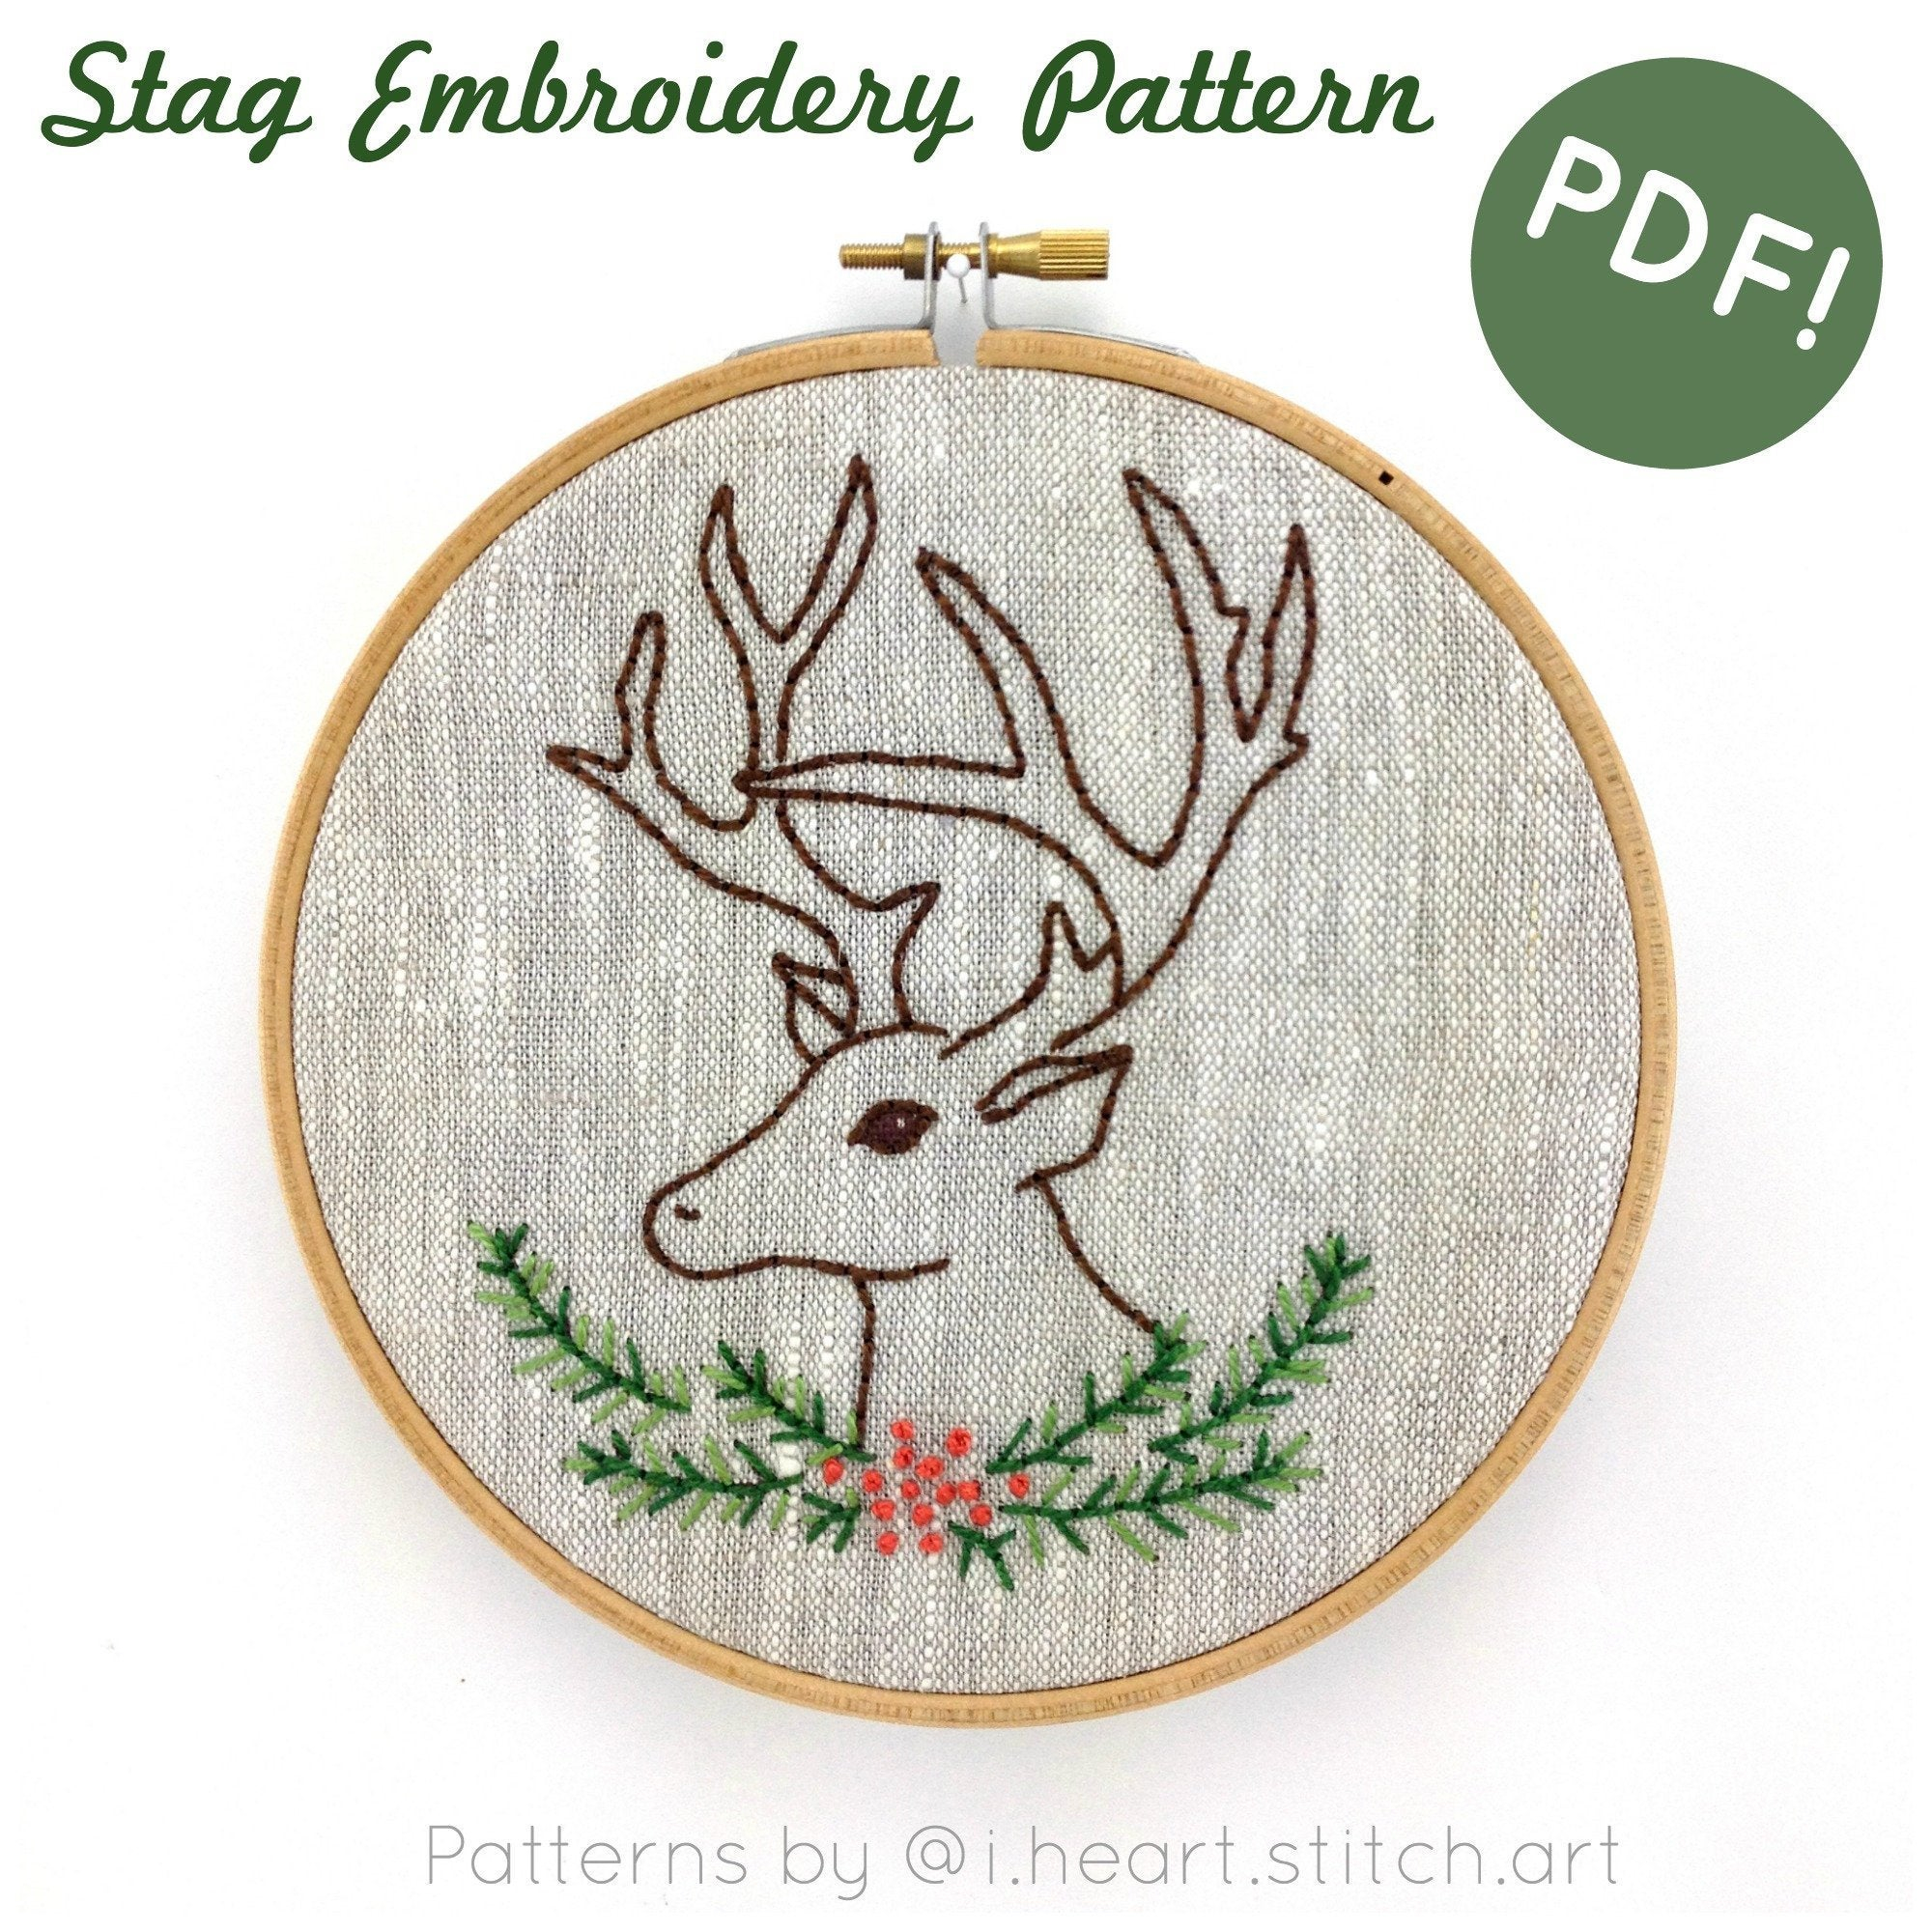 Christmas Hand Embroidery Patterns Christmas Hand Embroidery Pattern Stag Embroidery Pattern Deer Embroidery Pattern Pdf Cross Stitch Pattern Embroidery Pattern Pdf